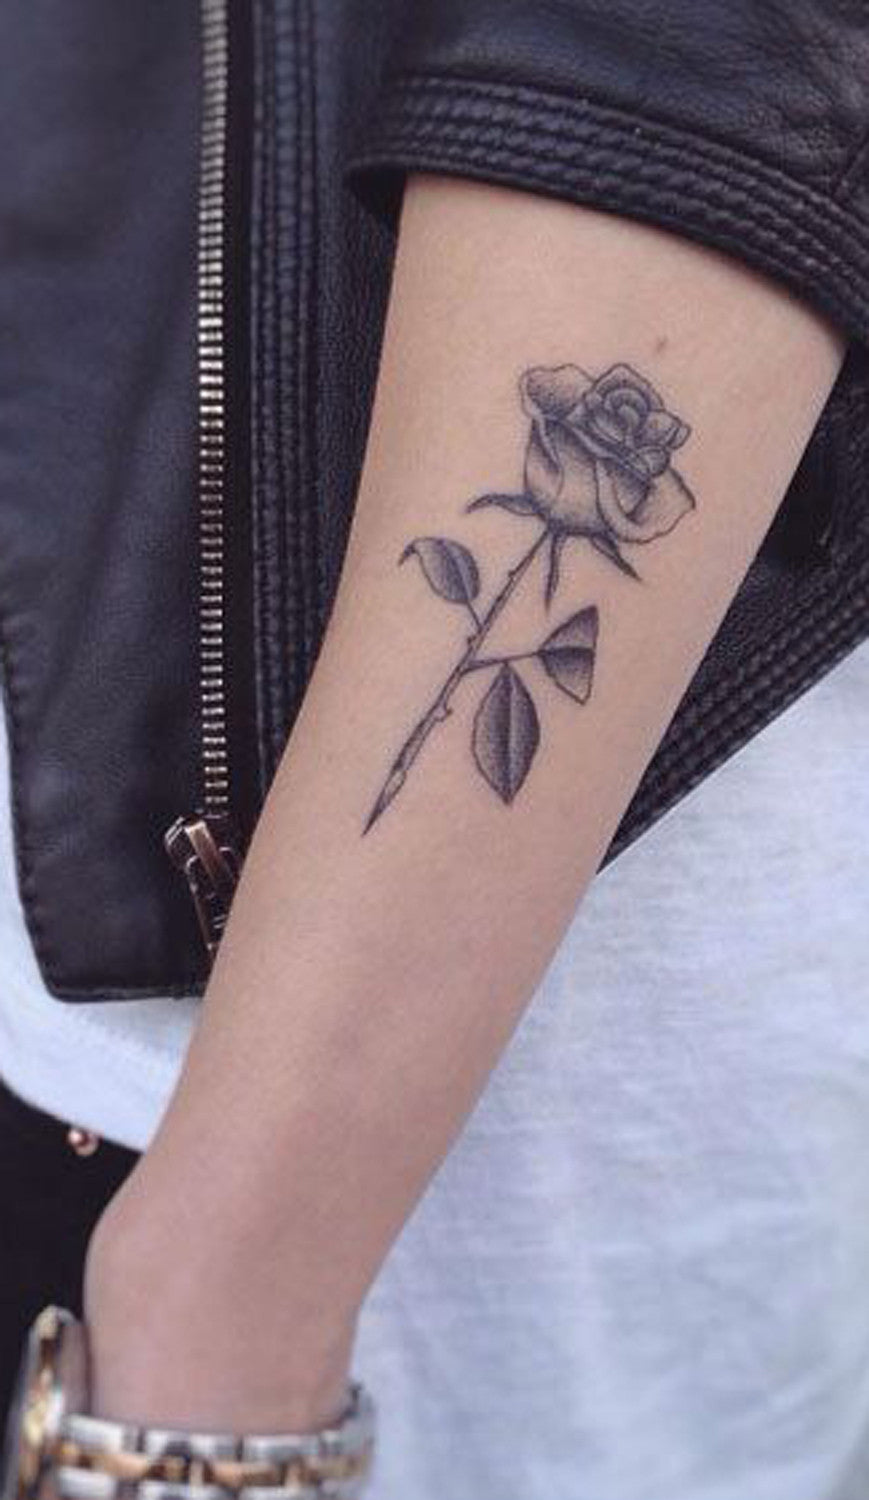 Small Flower Rose Tattoo Ideas - MyBodiArt.com